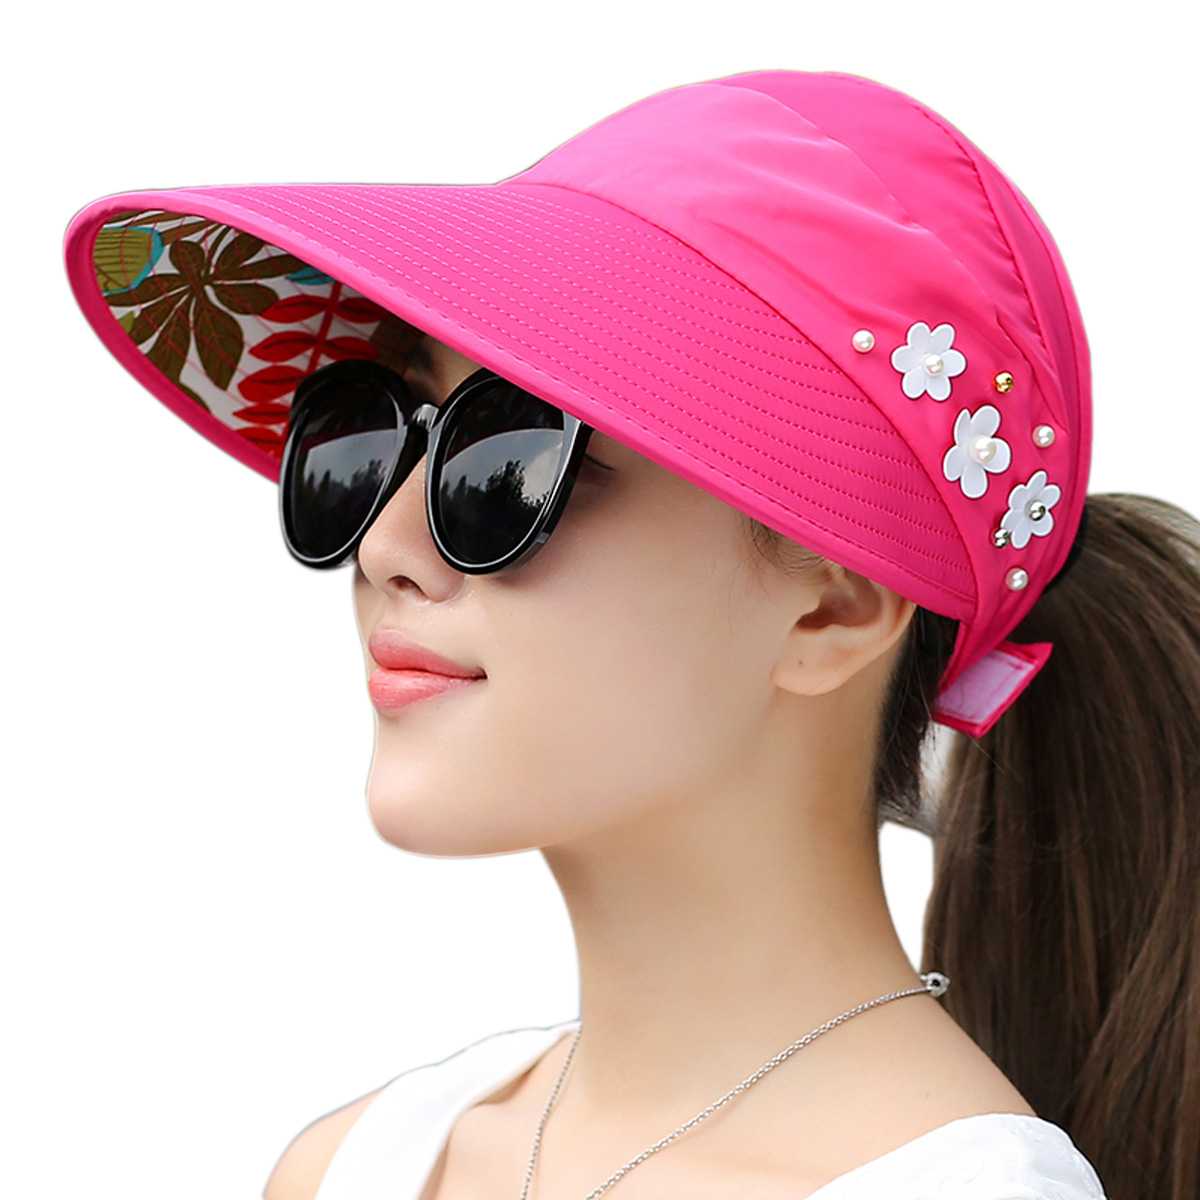 de6a32d50 Details about Womens UV Protection Sun Sports Hat Visor Cap Packable Wide  Brim Hat Tennis 2018